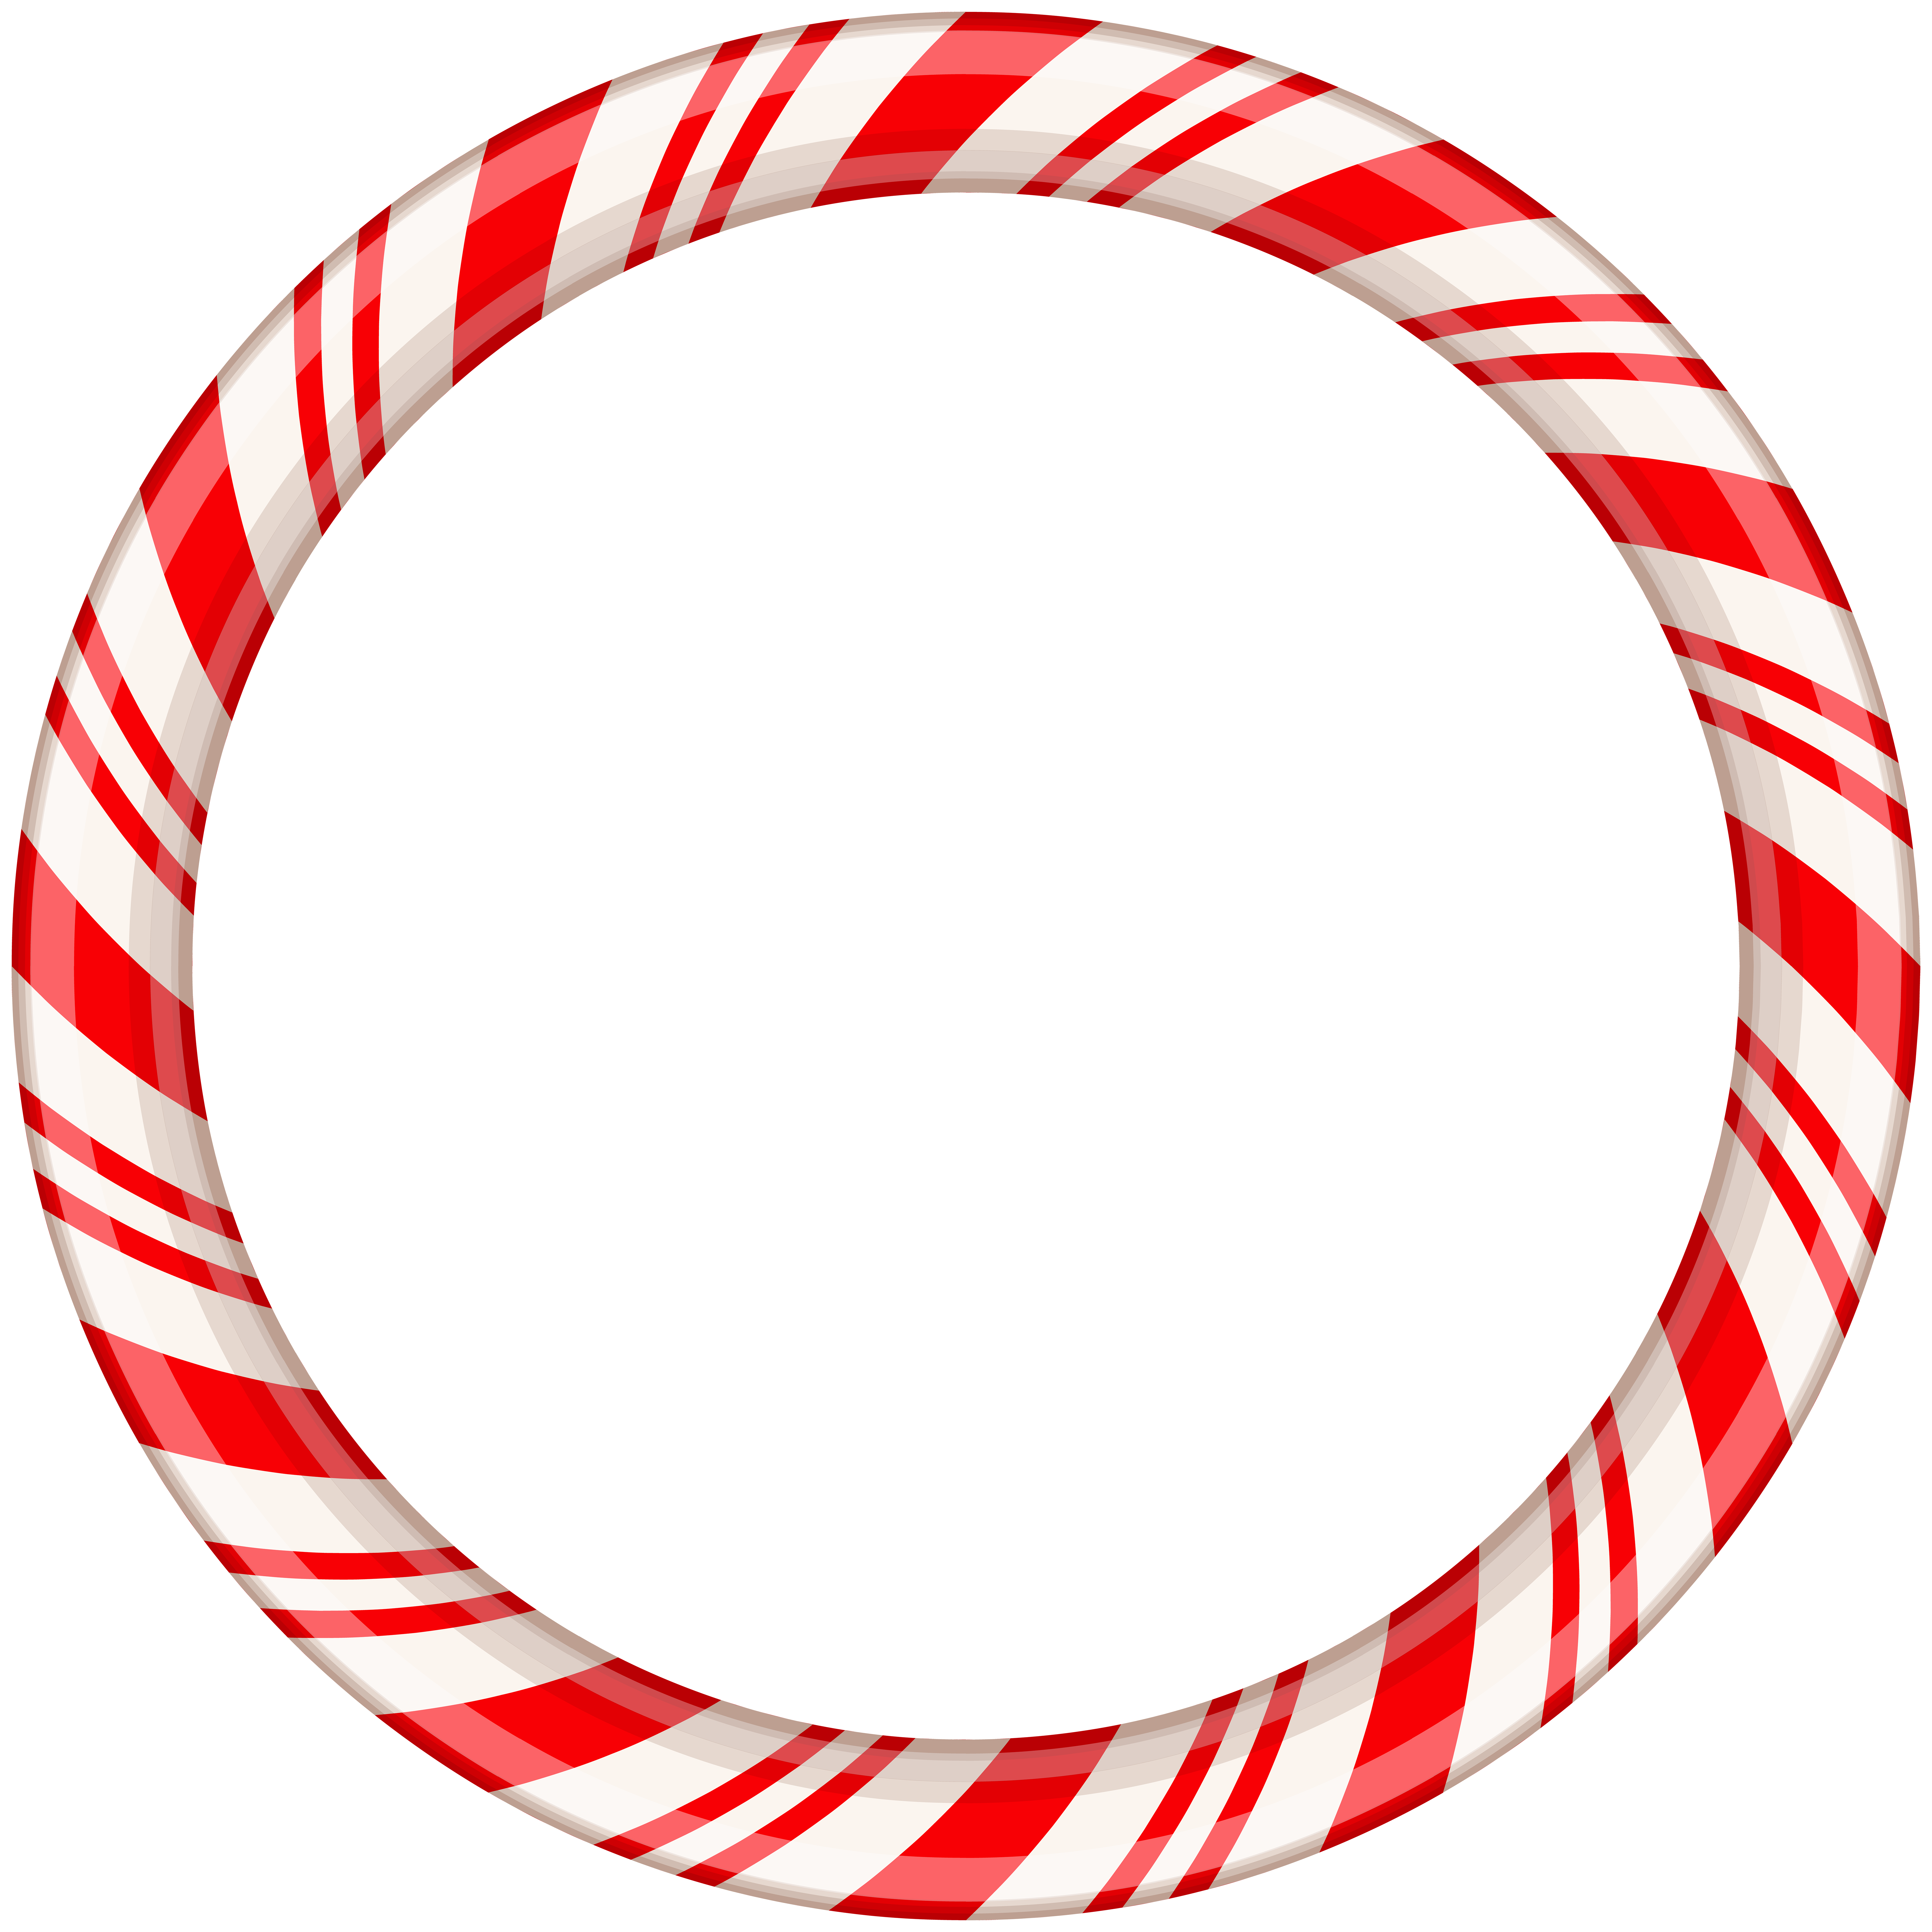 Download Free png Candy Cane Round Border Frame Transparent.